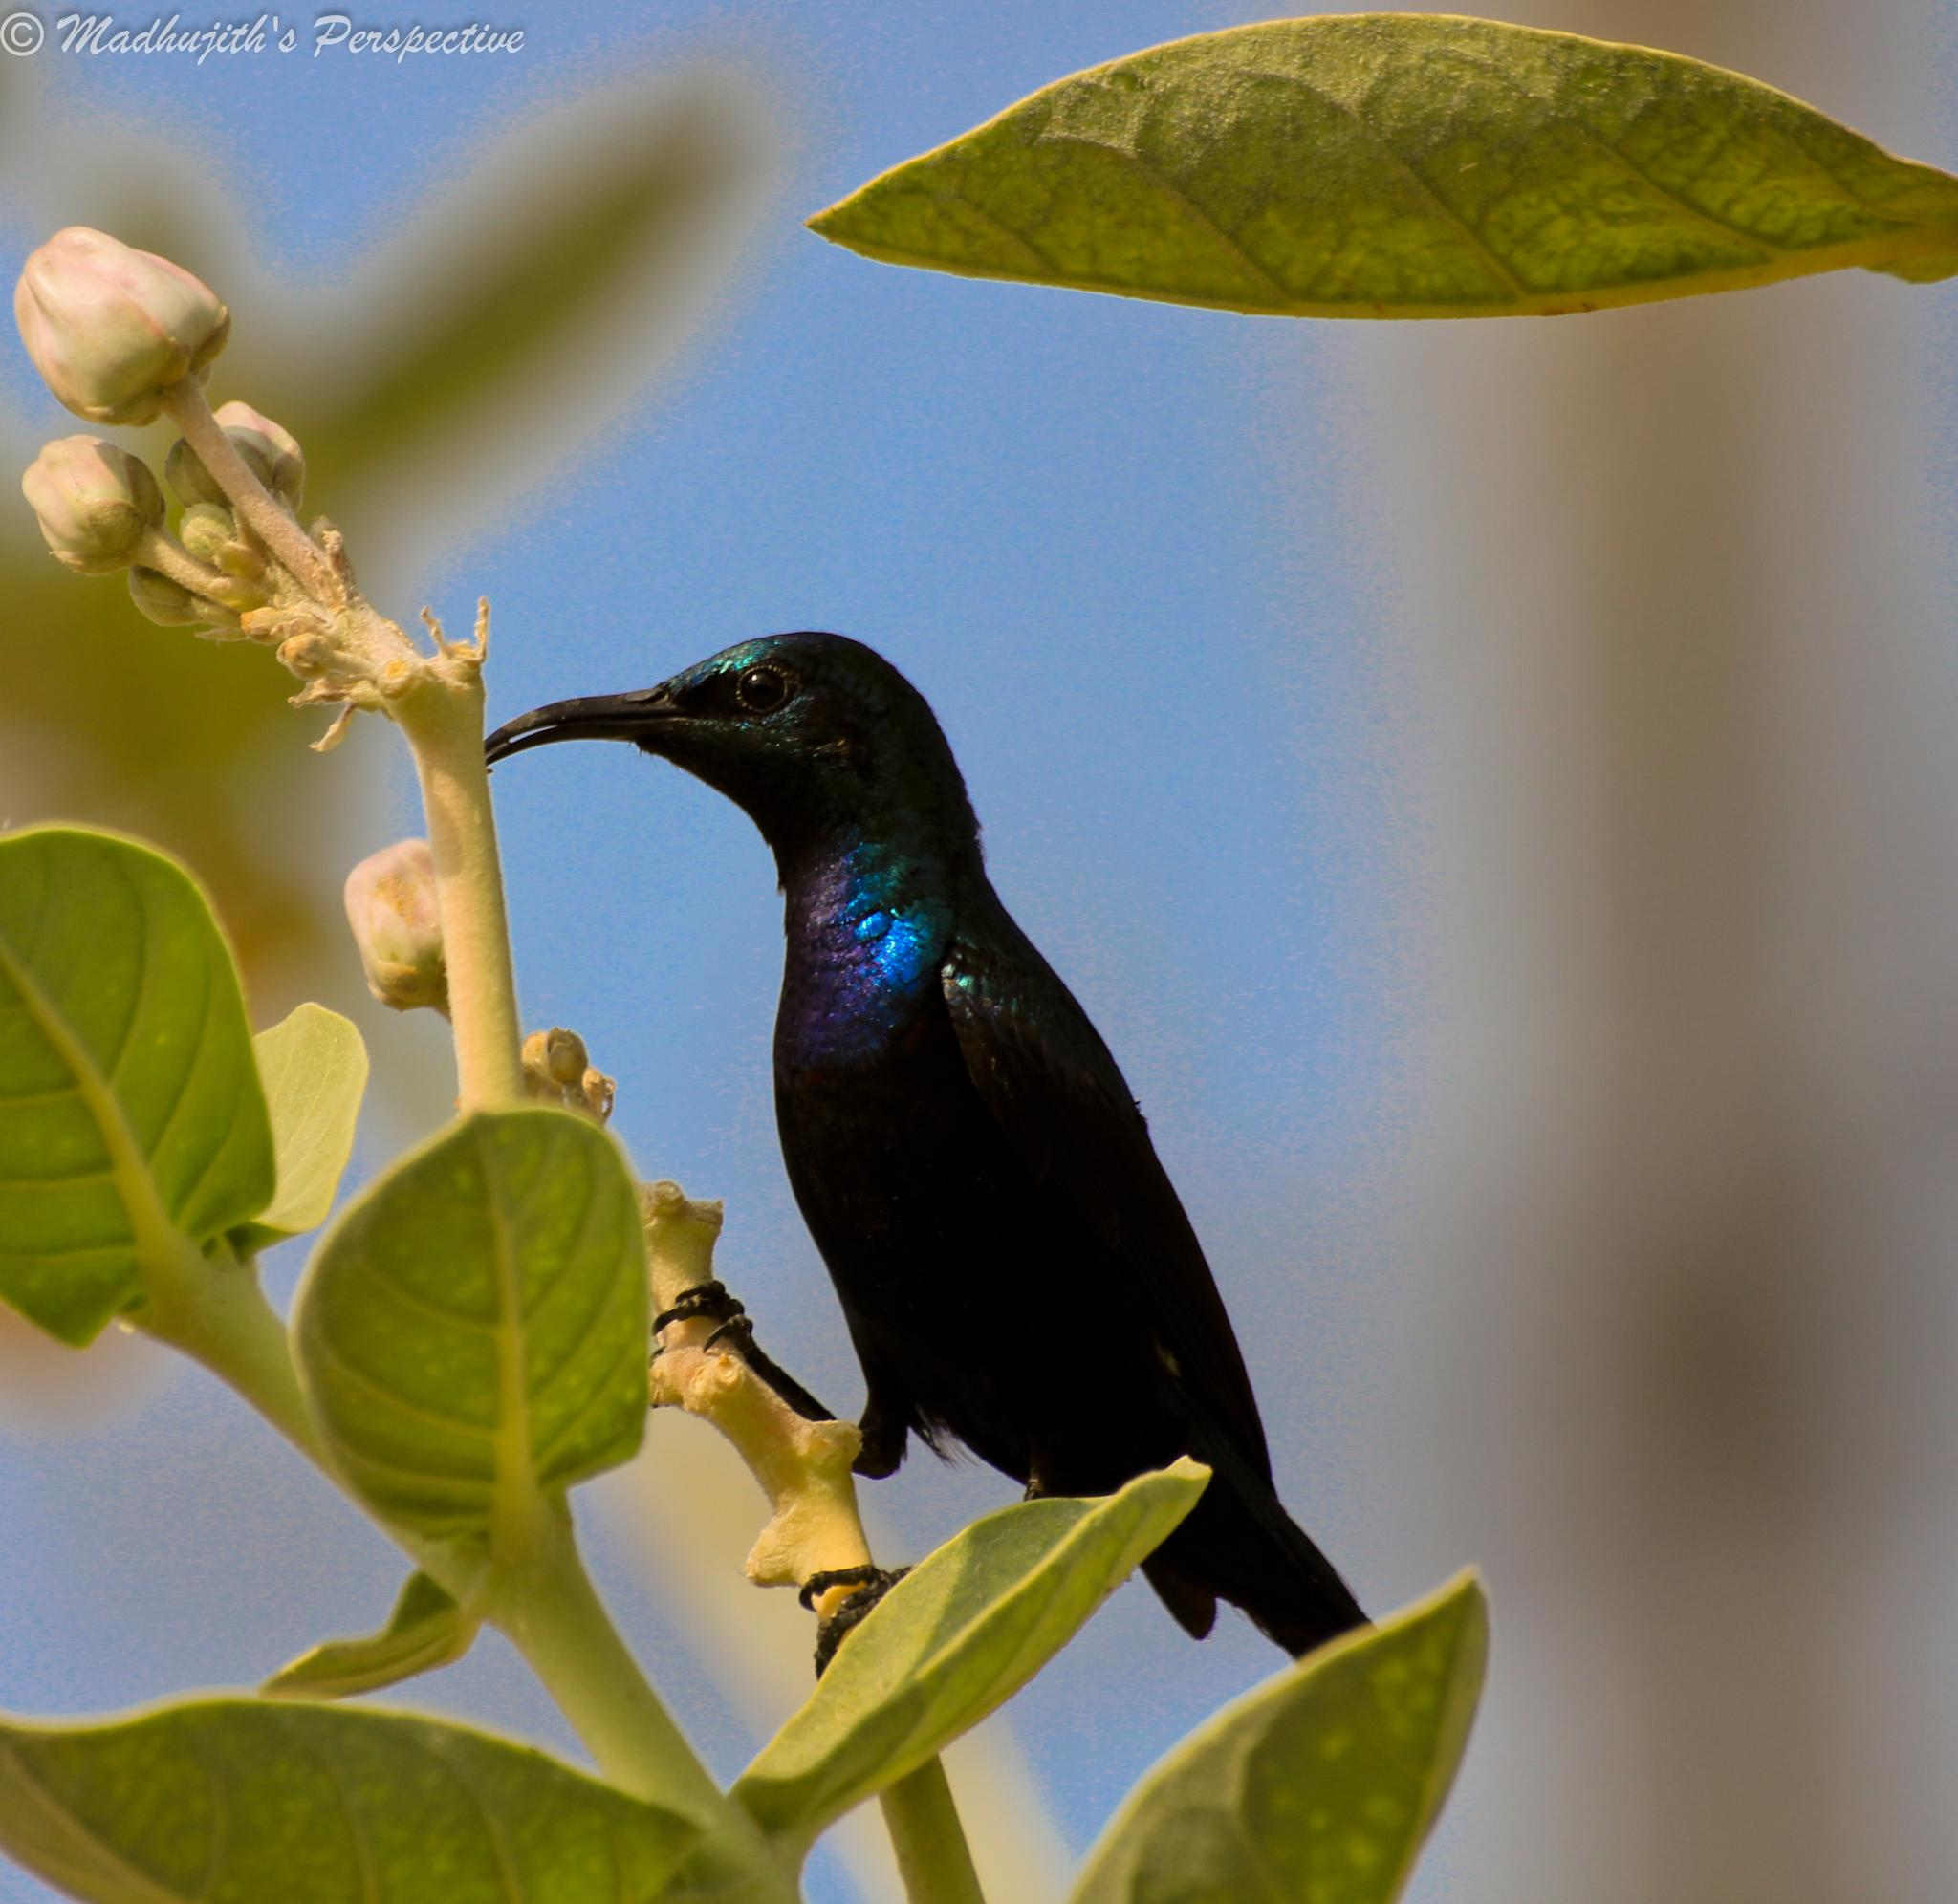 Purple Sunbird by madhujith